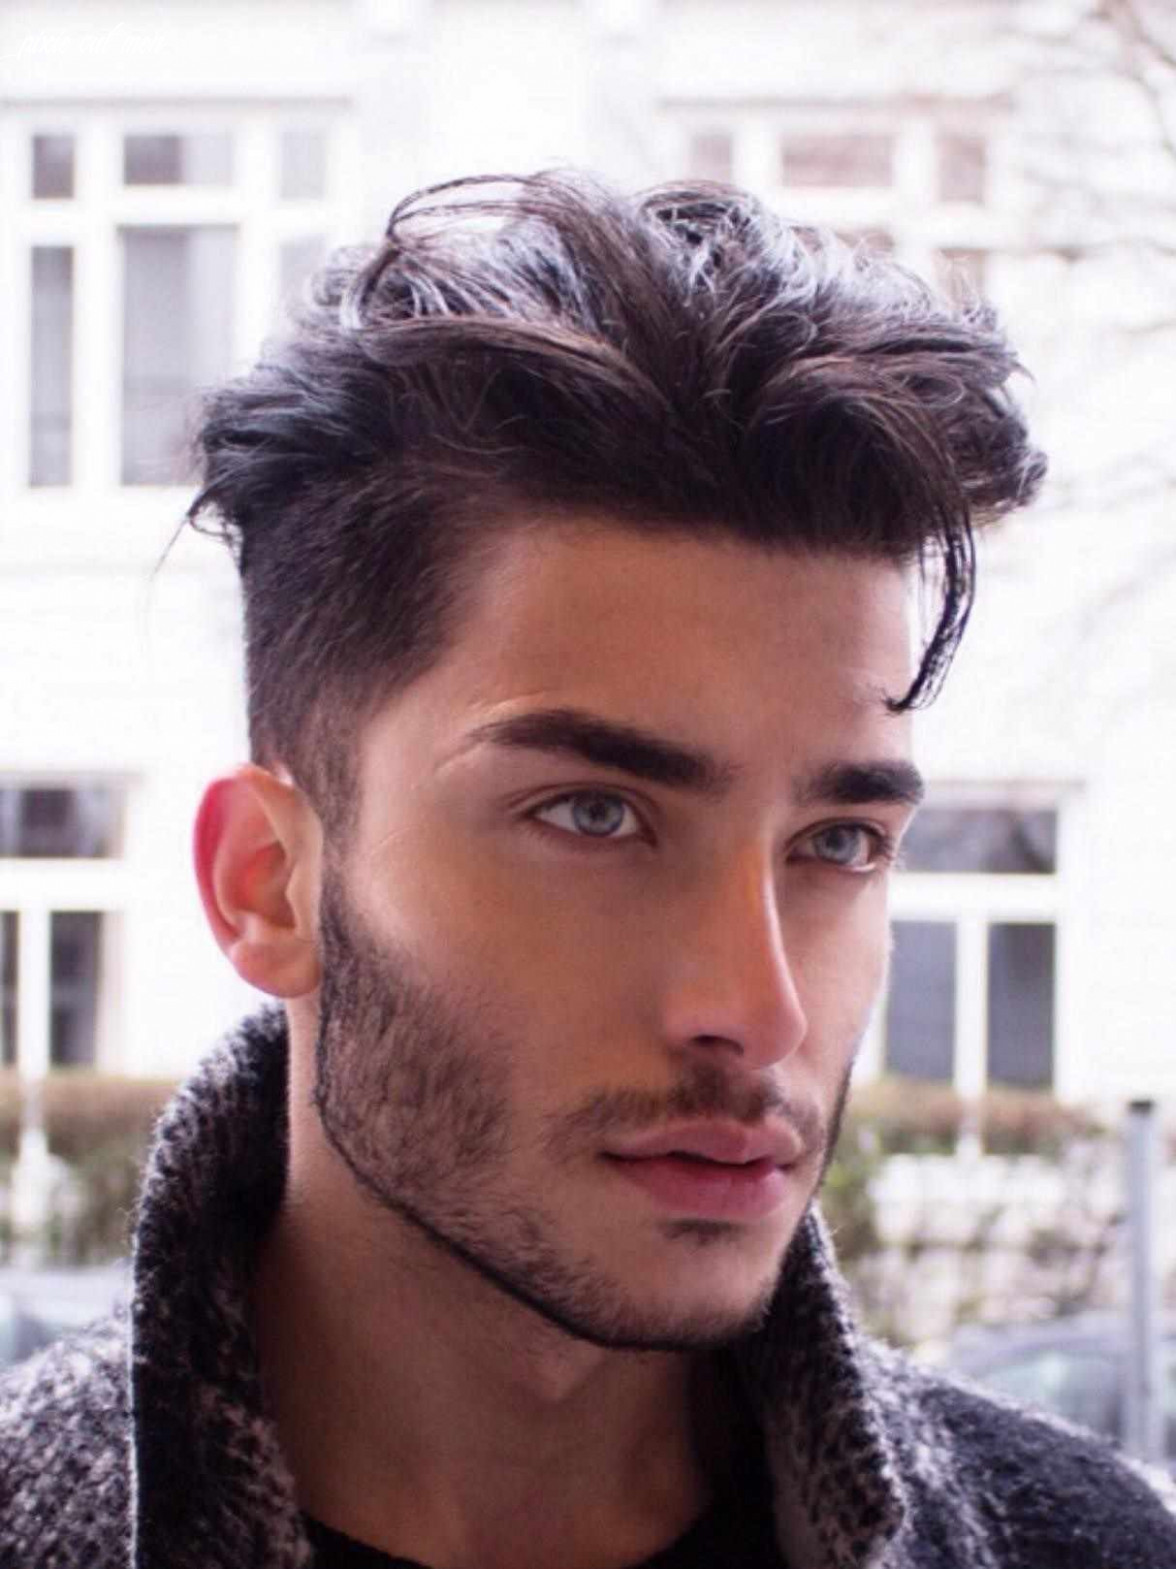 Pixie Haircut | Cool hairstyles for men, Haircuts for men, Mens ...